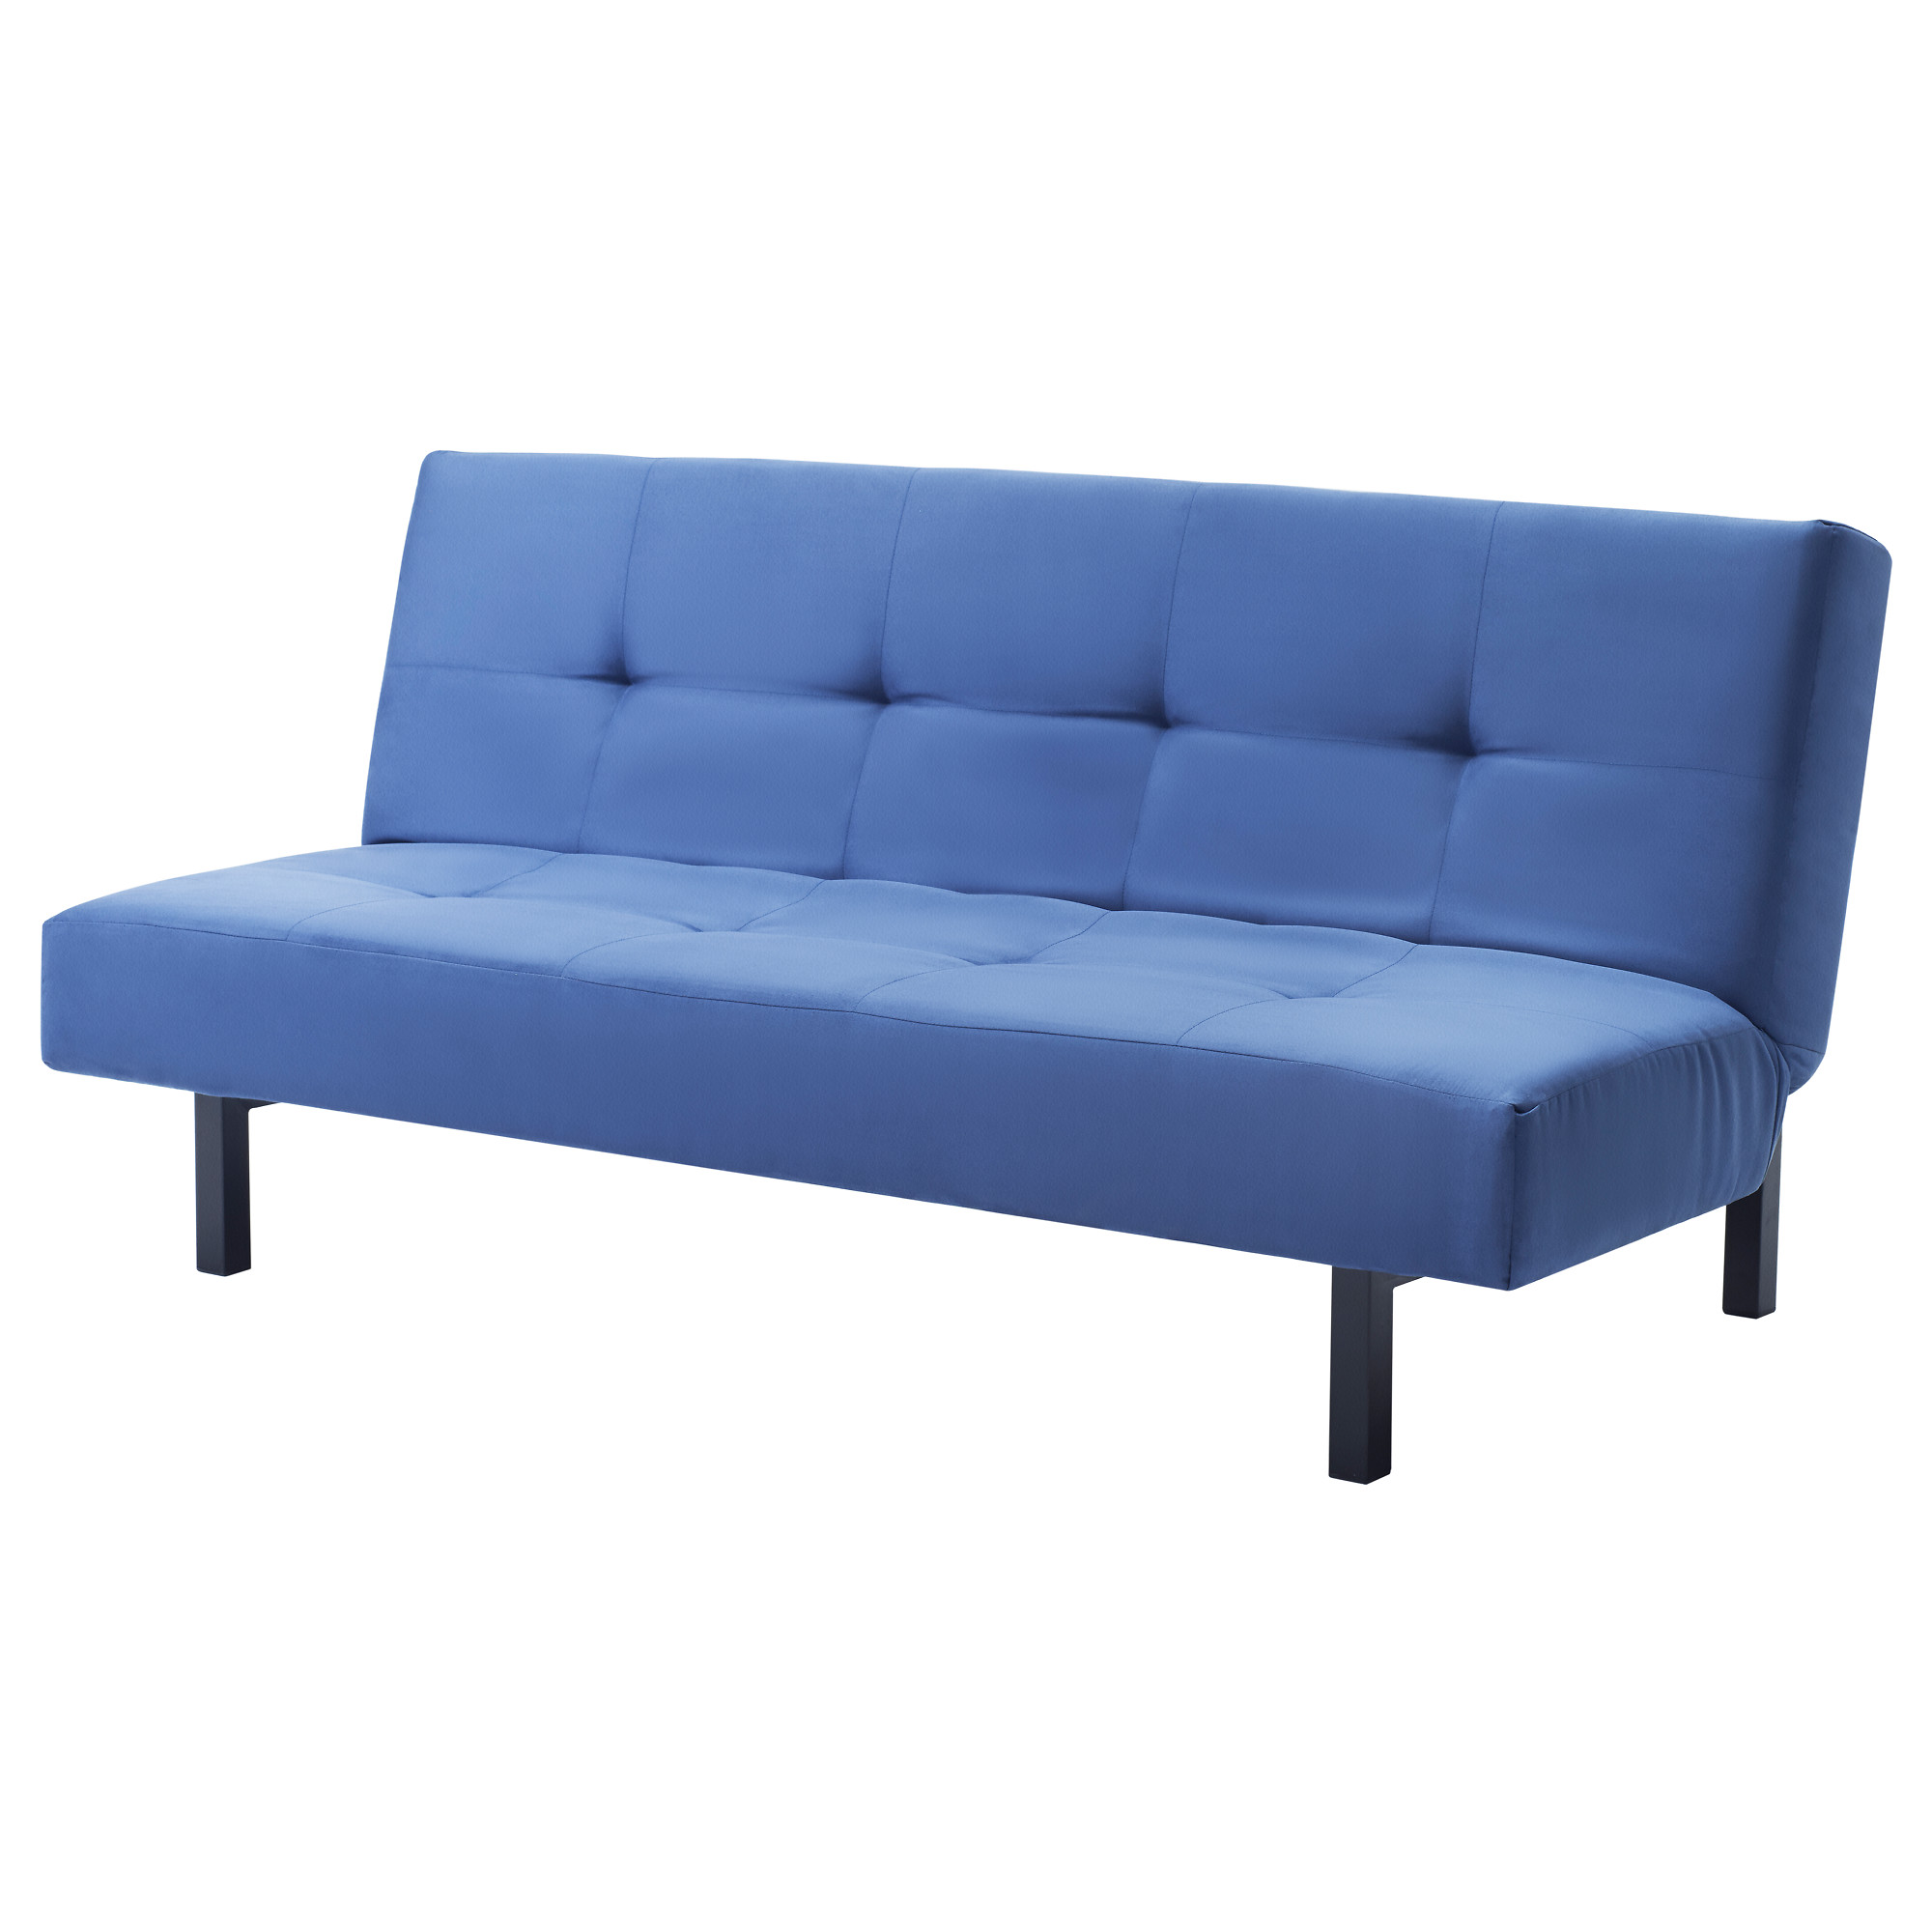 Best sofa sleepers ikea homesfeed for Furniture sofa bed